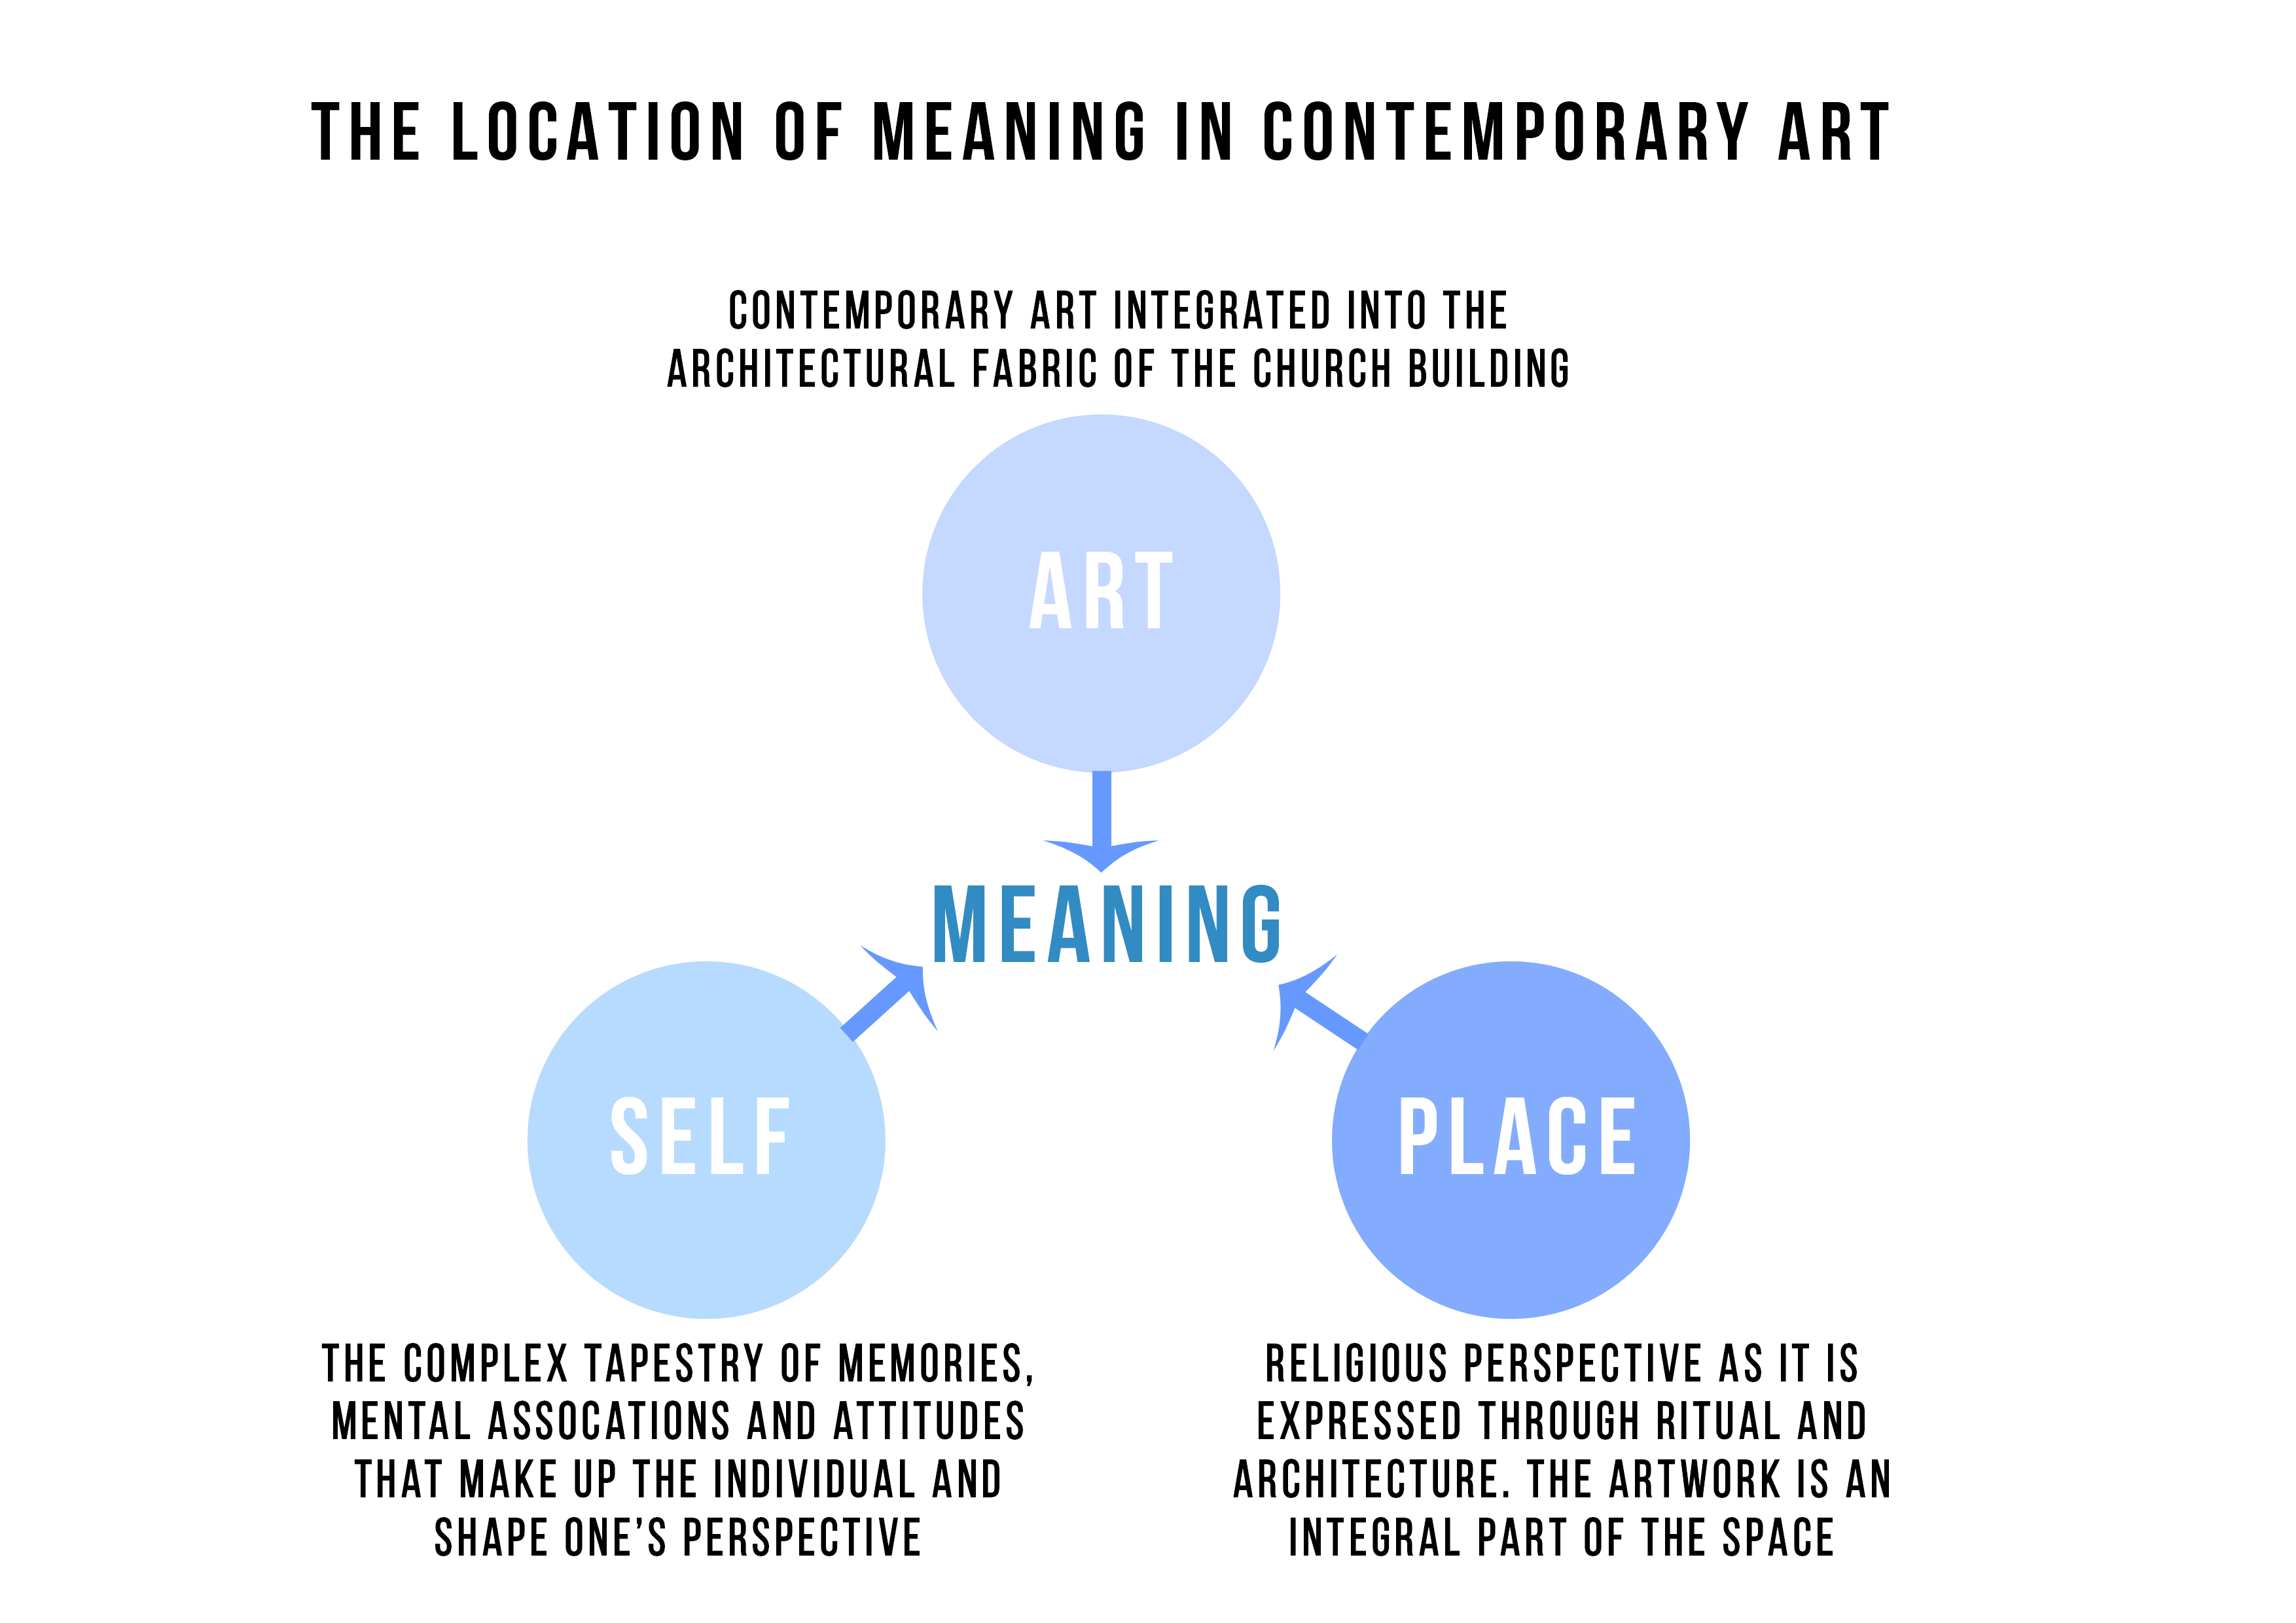 Kunstglaube contemporary art in sacred space the following diagram illustrates how meaning is found in the experience of contemporary art in a sacred space pooptronica Images